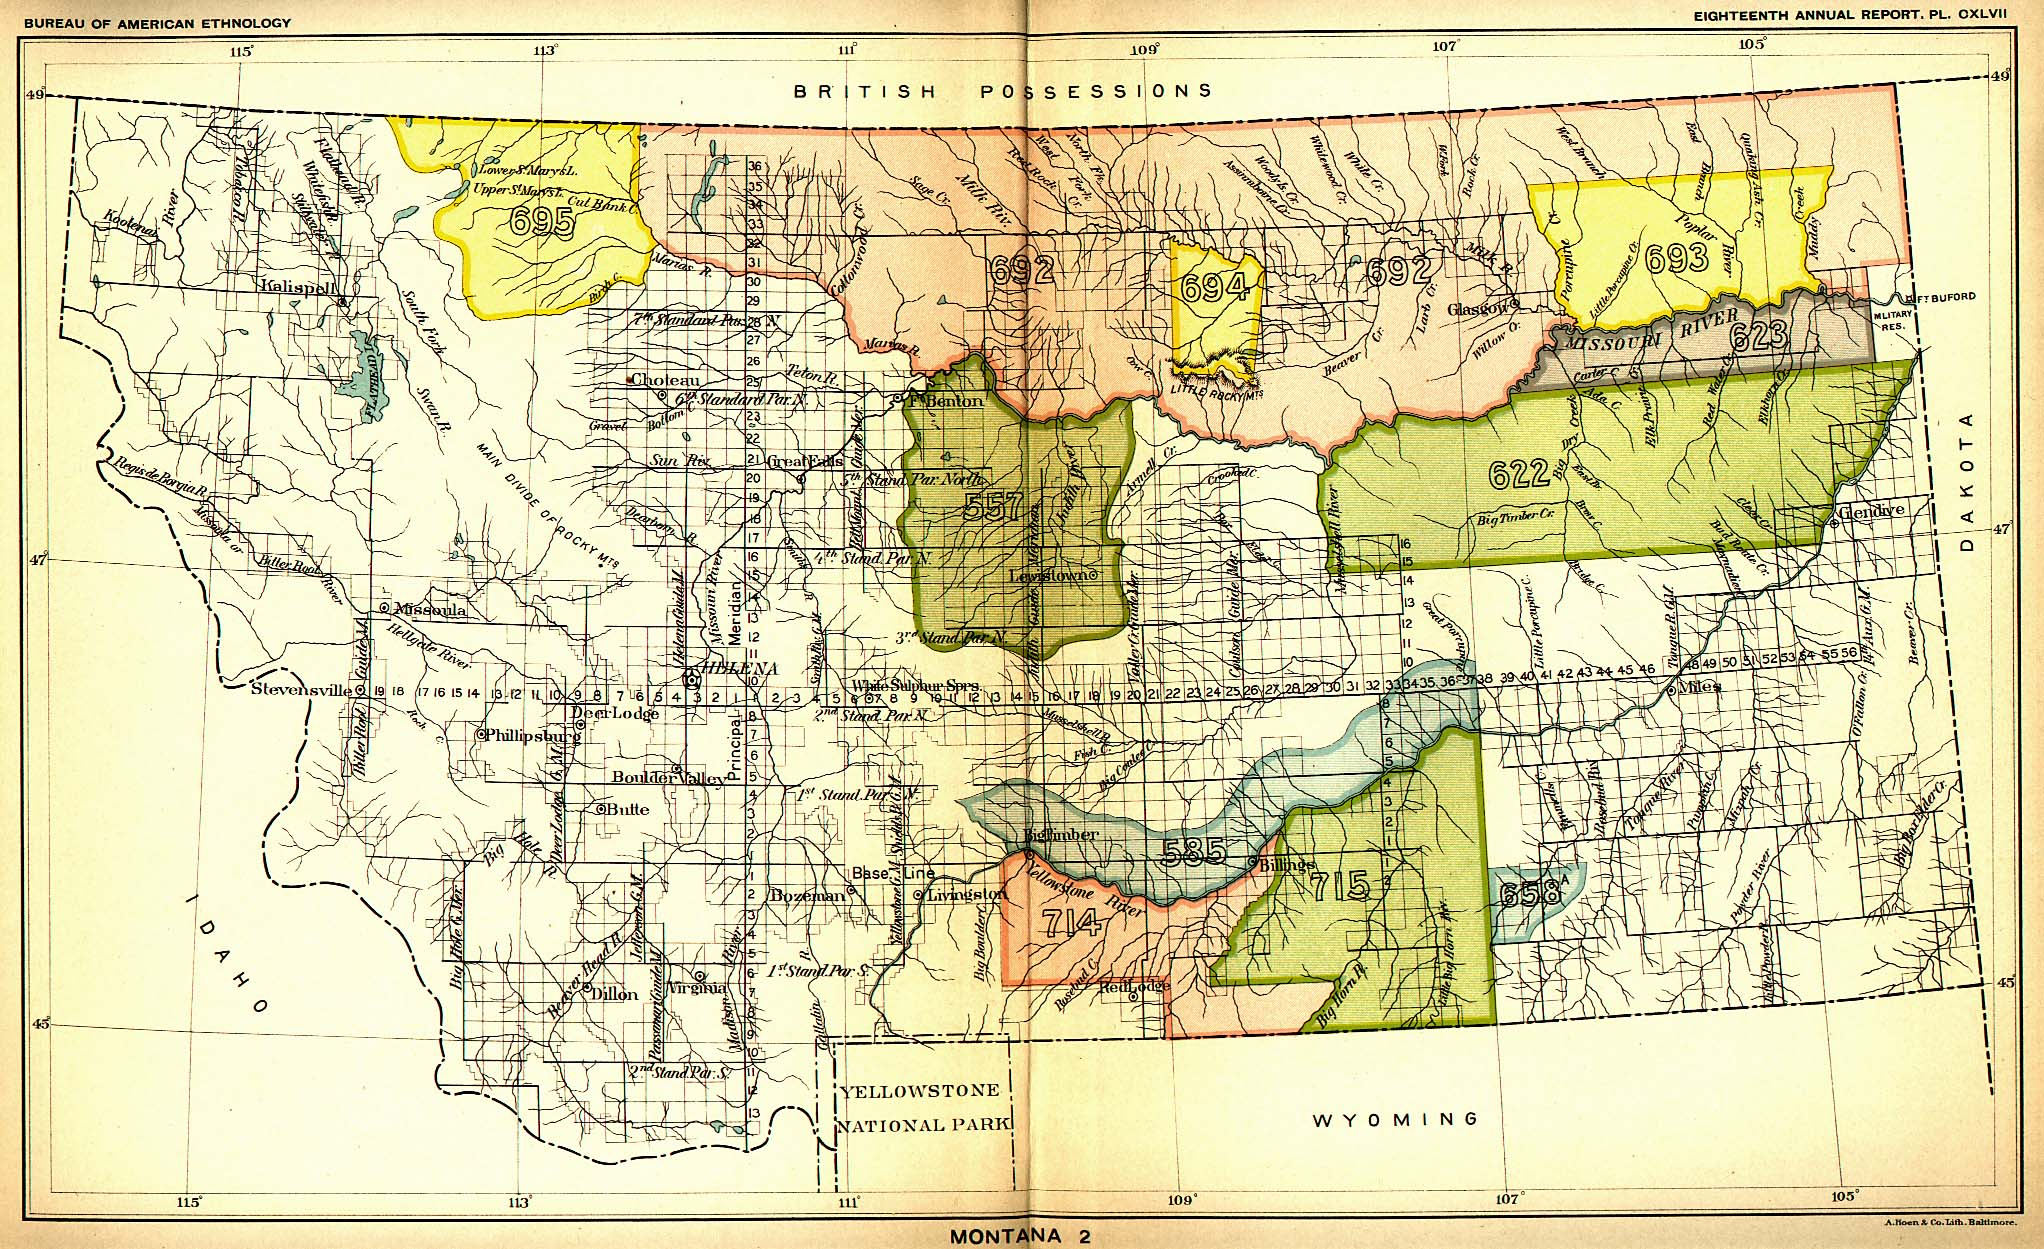 Indian Land Cessions In The U S Montana 2 Map 40